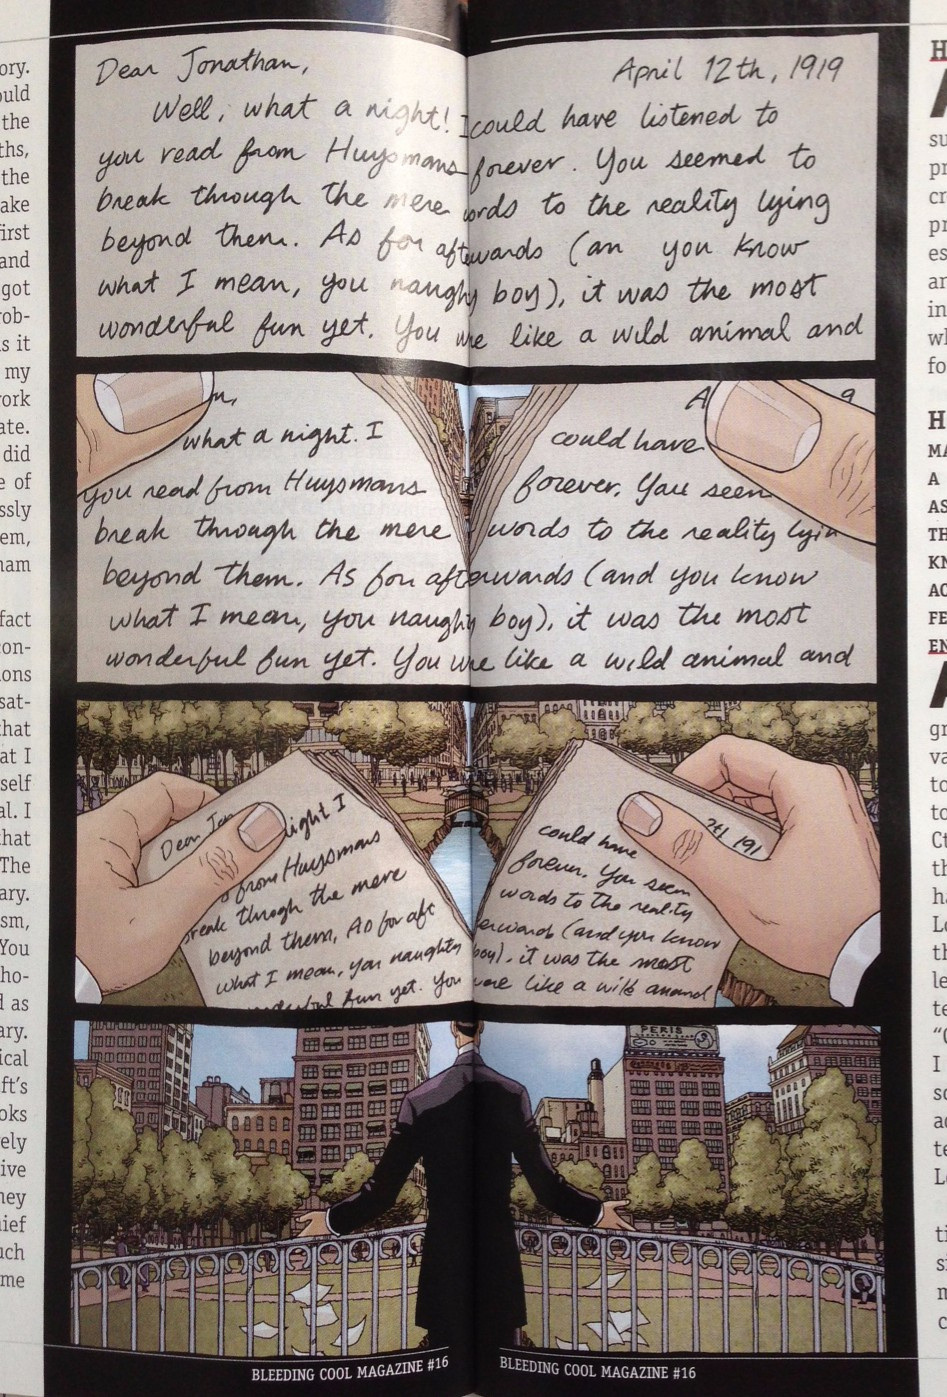 neonomicon facts in the case of alan moore s providence new providence page revealed in bleeding cool magazine 16 art by jacen burrows